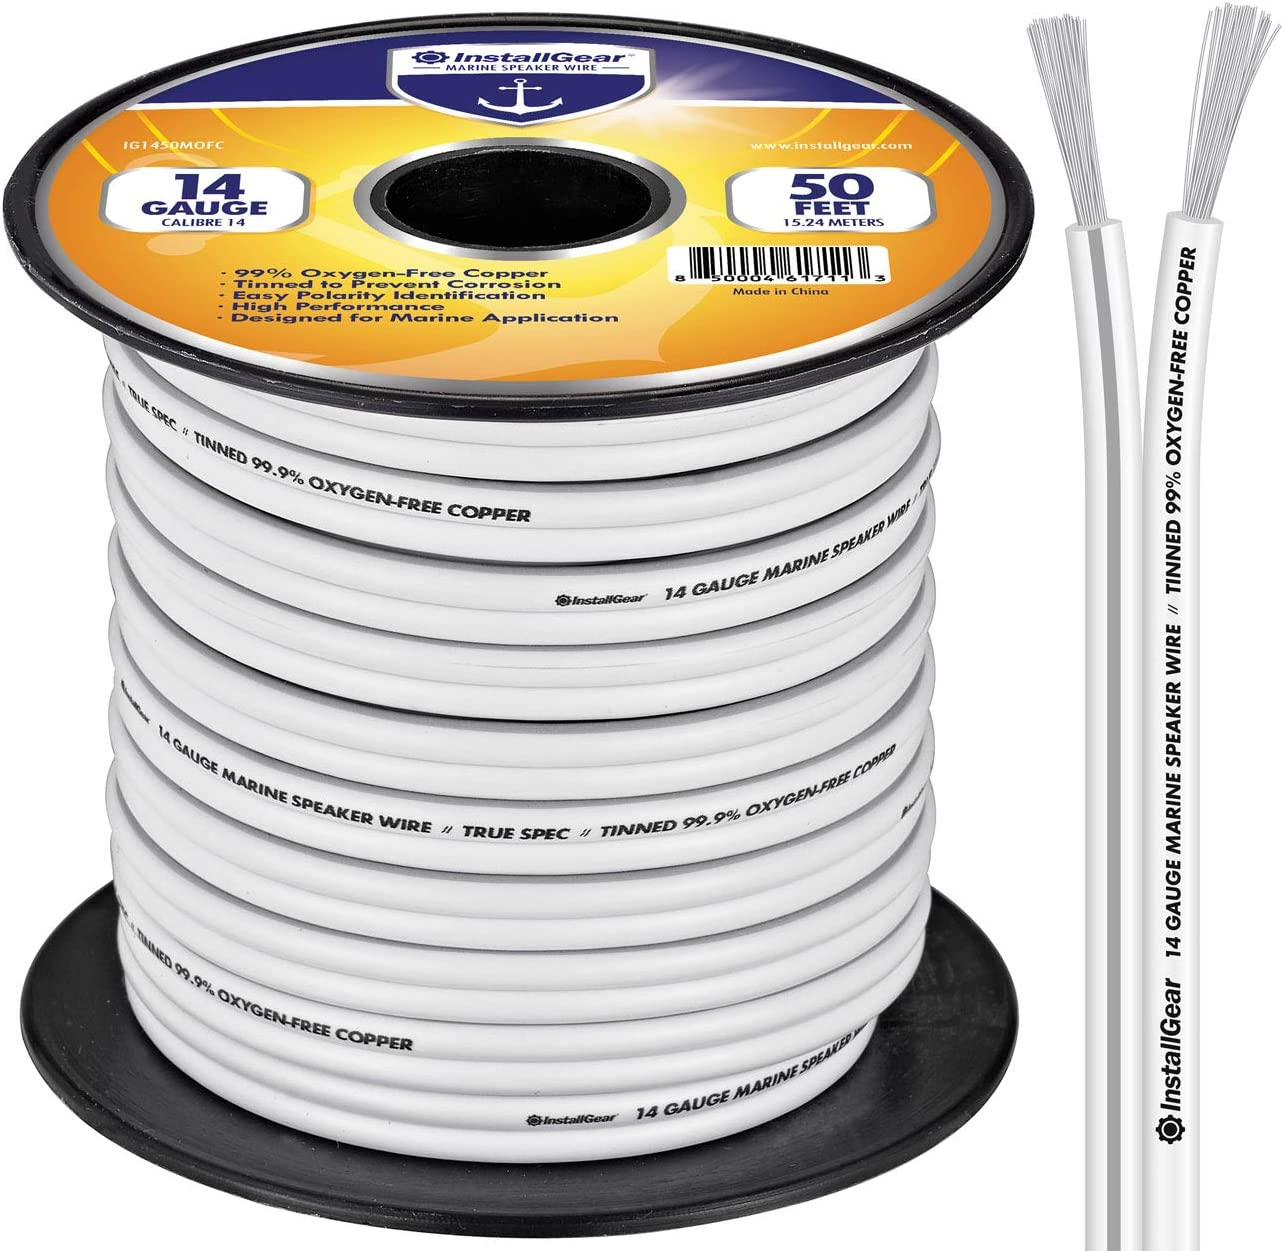 InstallGear 8 Gauge Tinned OFC Heavy Duty Boat Marine Speaker Wire, 8 feet